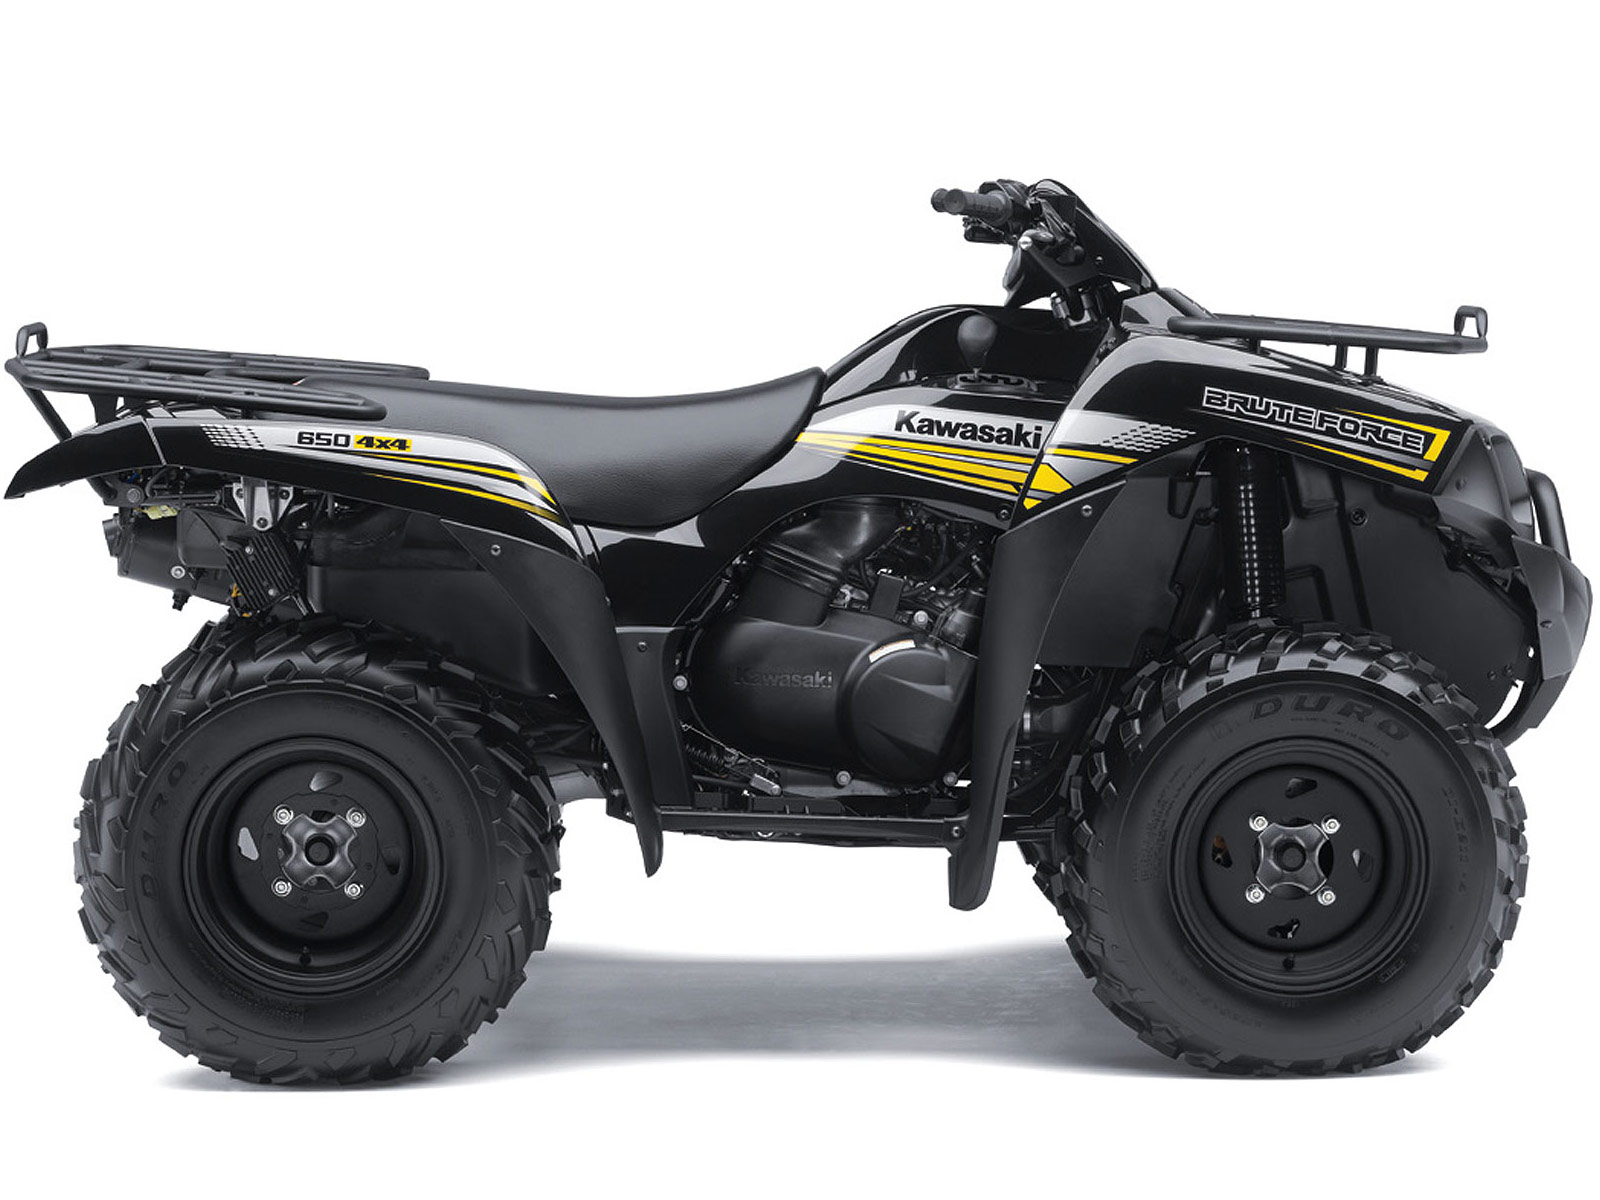 2013 kawasaki brute force 650 4x4 atv pictures and specifications. Black Bedroom Furniture Sets. Home Design Ideas